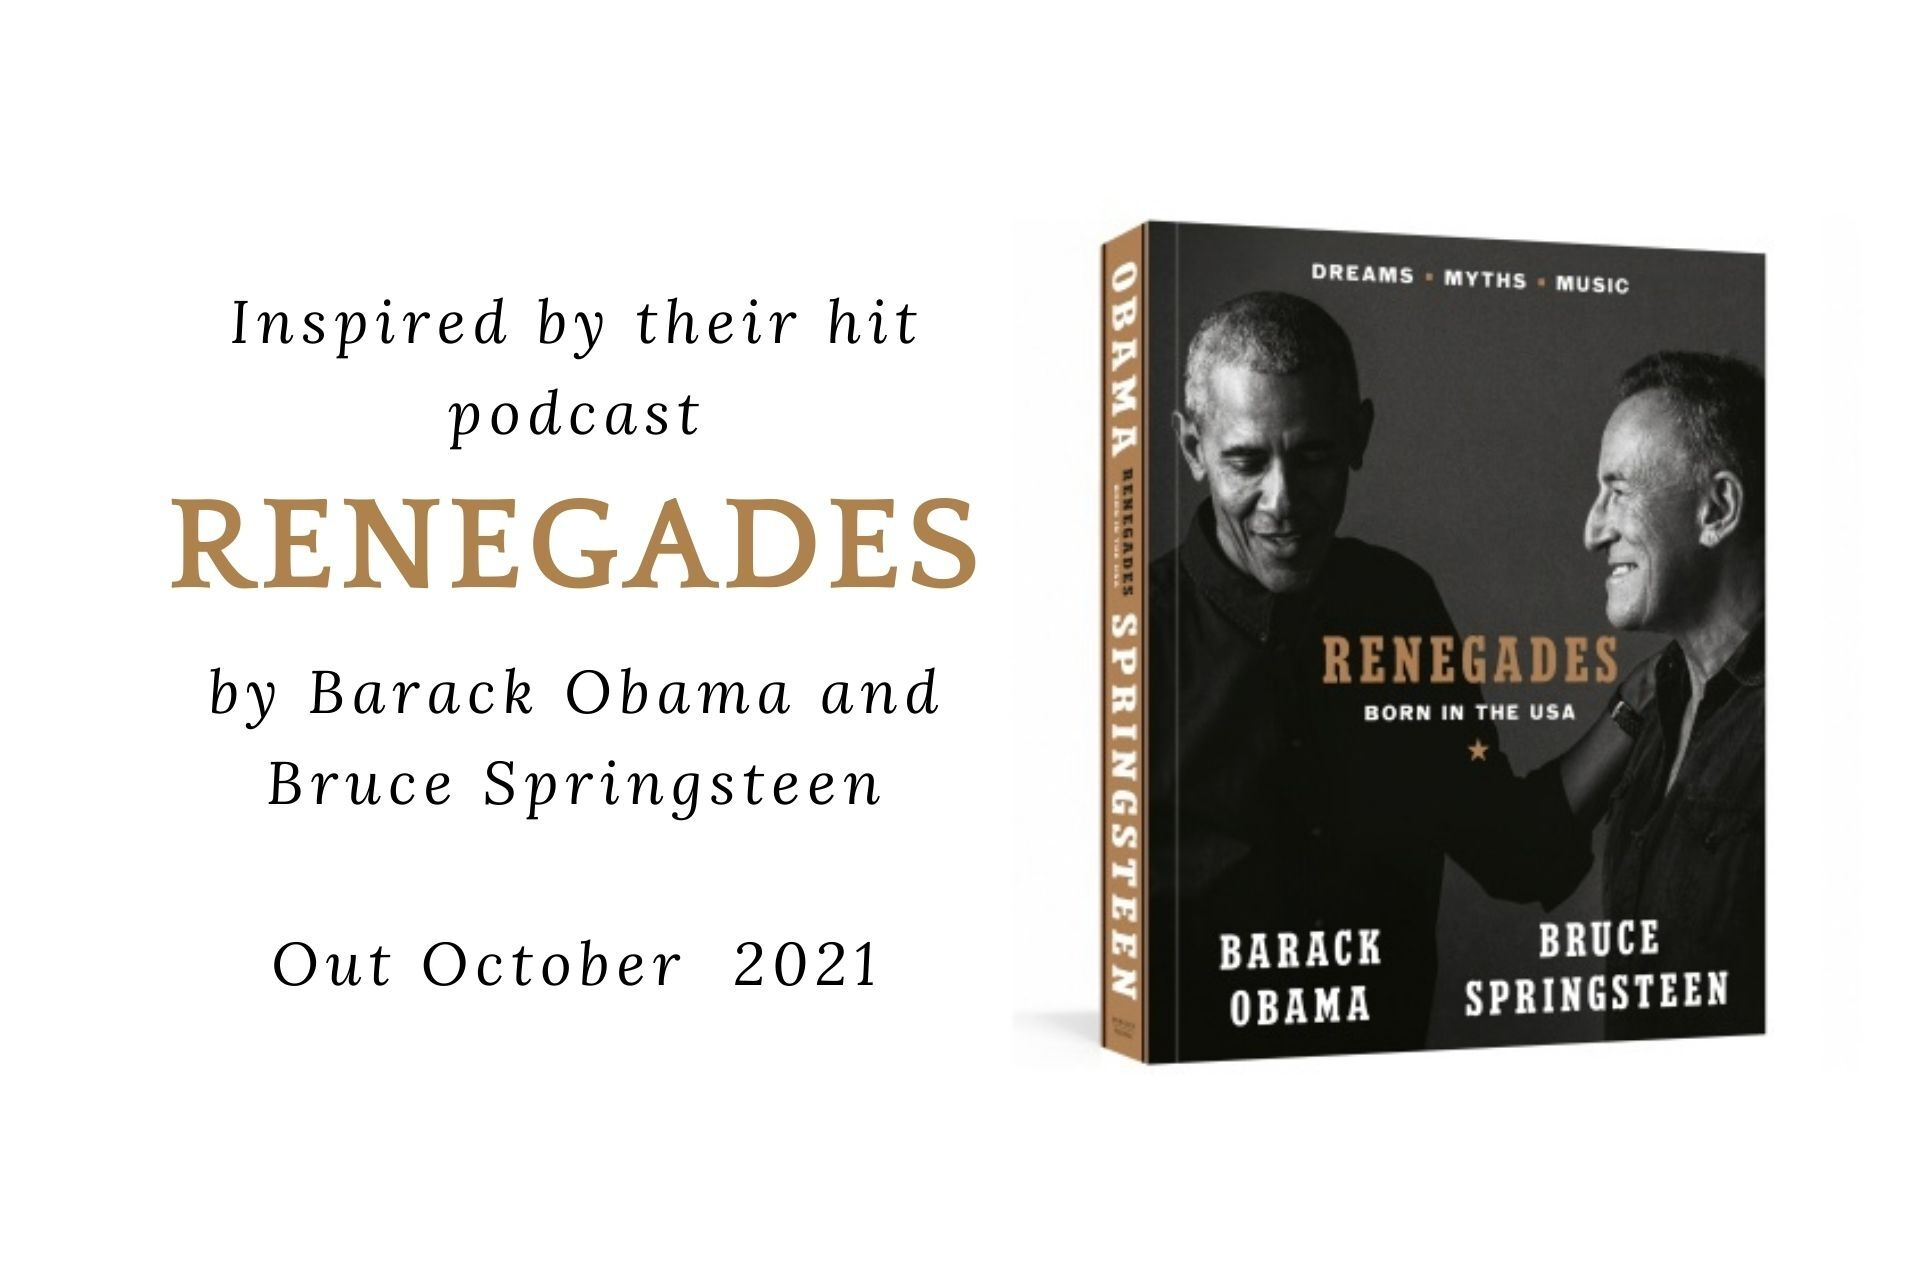 Barack Obama and Bruce Springsteen announce new book Renegades inspired by their hit podcast